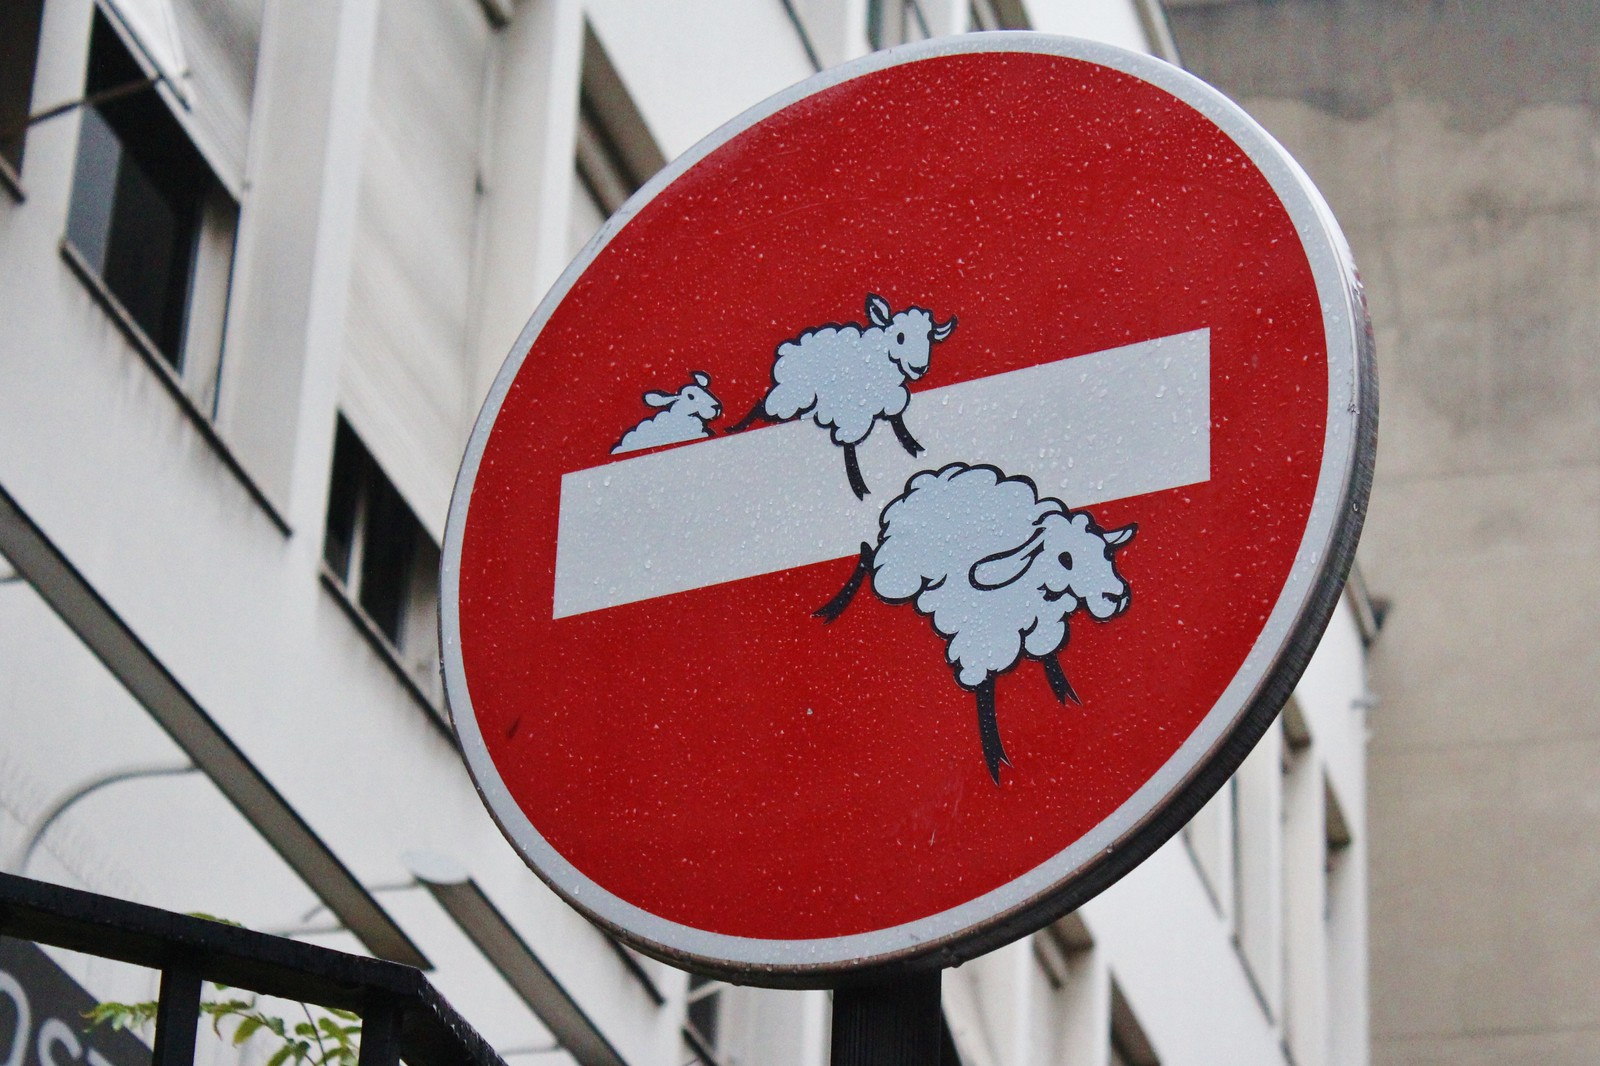 Street-Art-by-street-artist-Clet-in-Paris-France-photo-by-meuh1246-854466